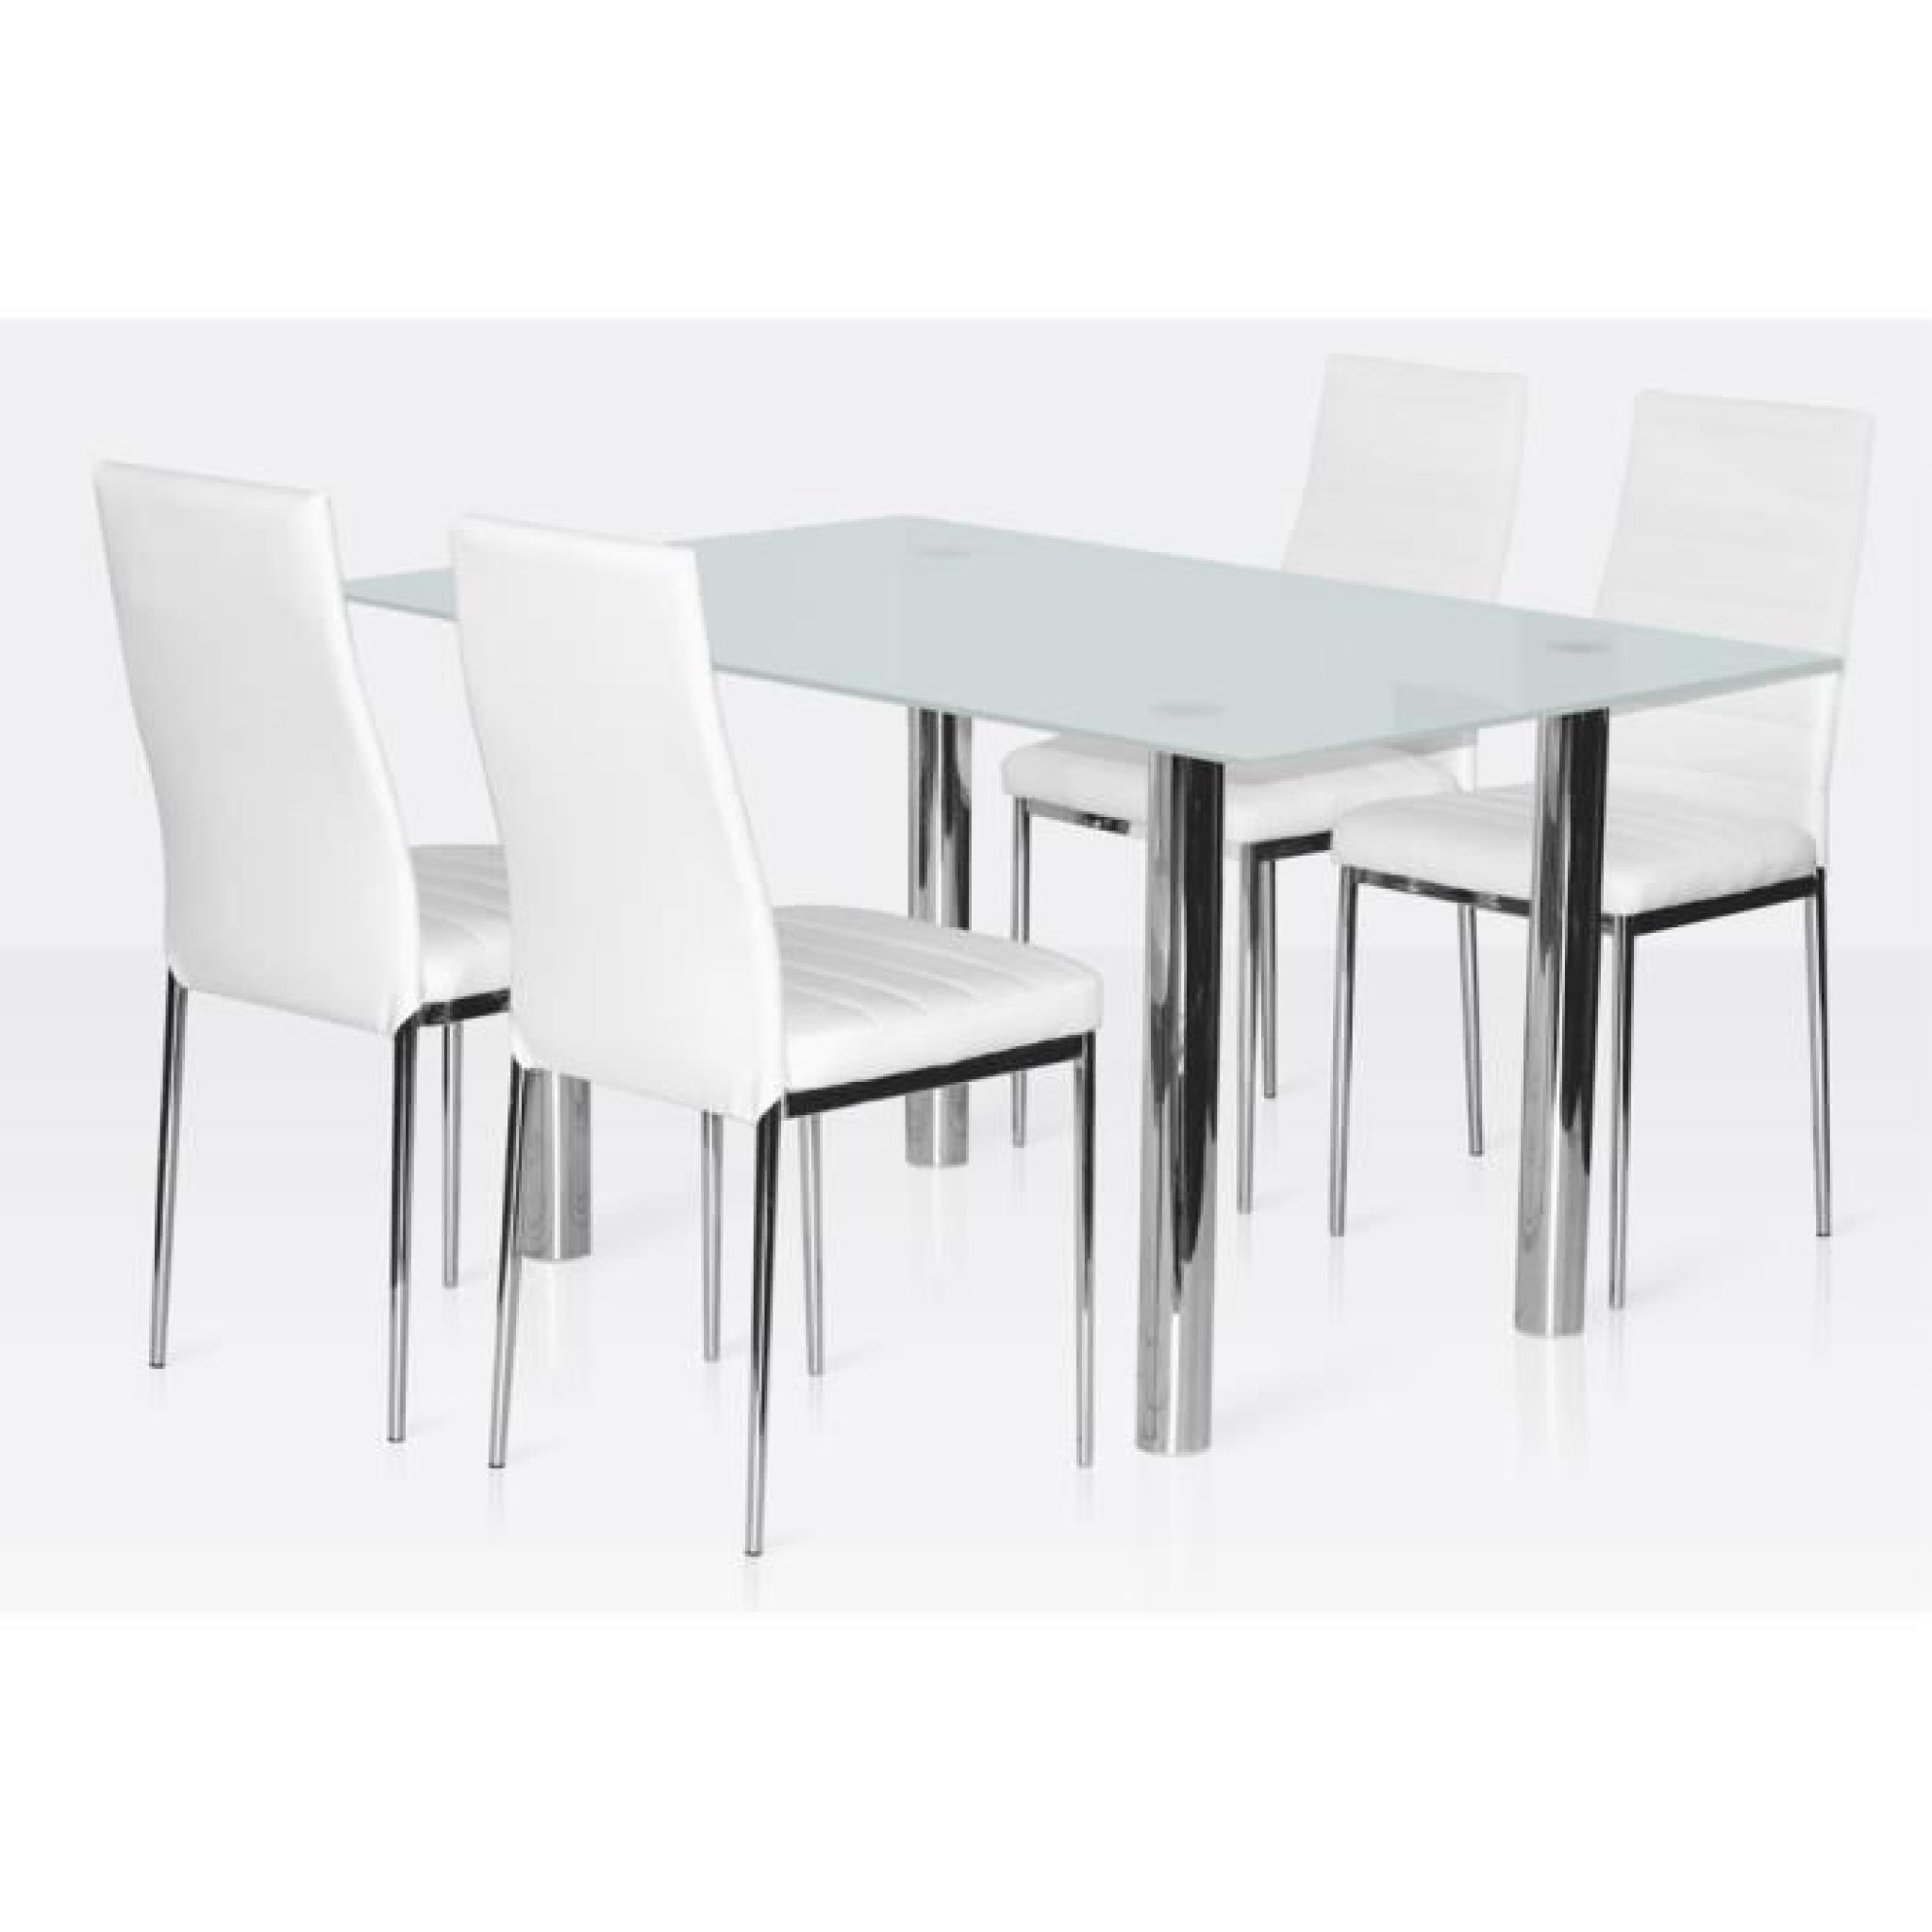 Ensemble table et chaise salle a manger ensemble table for Ensemble table et 6 chaise salle a manger